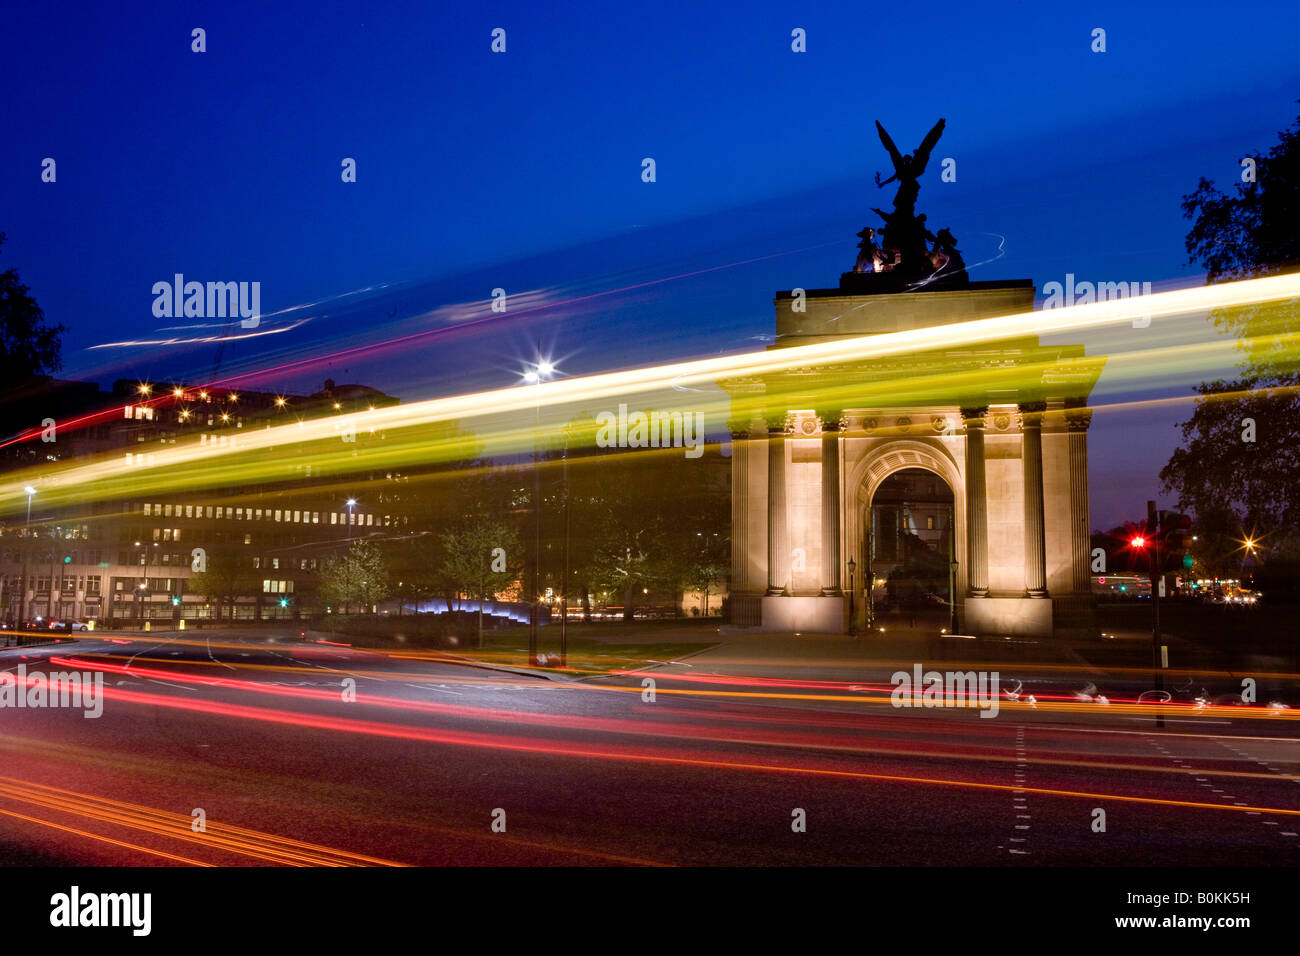 Wellington Arch Hyde Park Corner London U K Europe - Stock Image